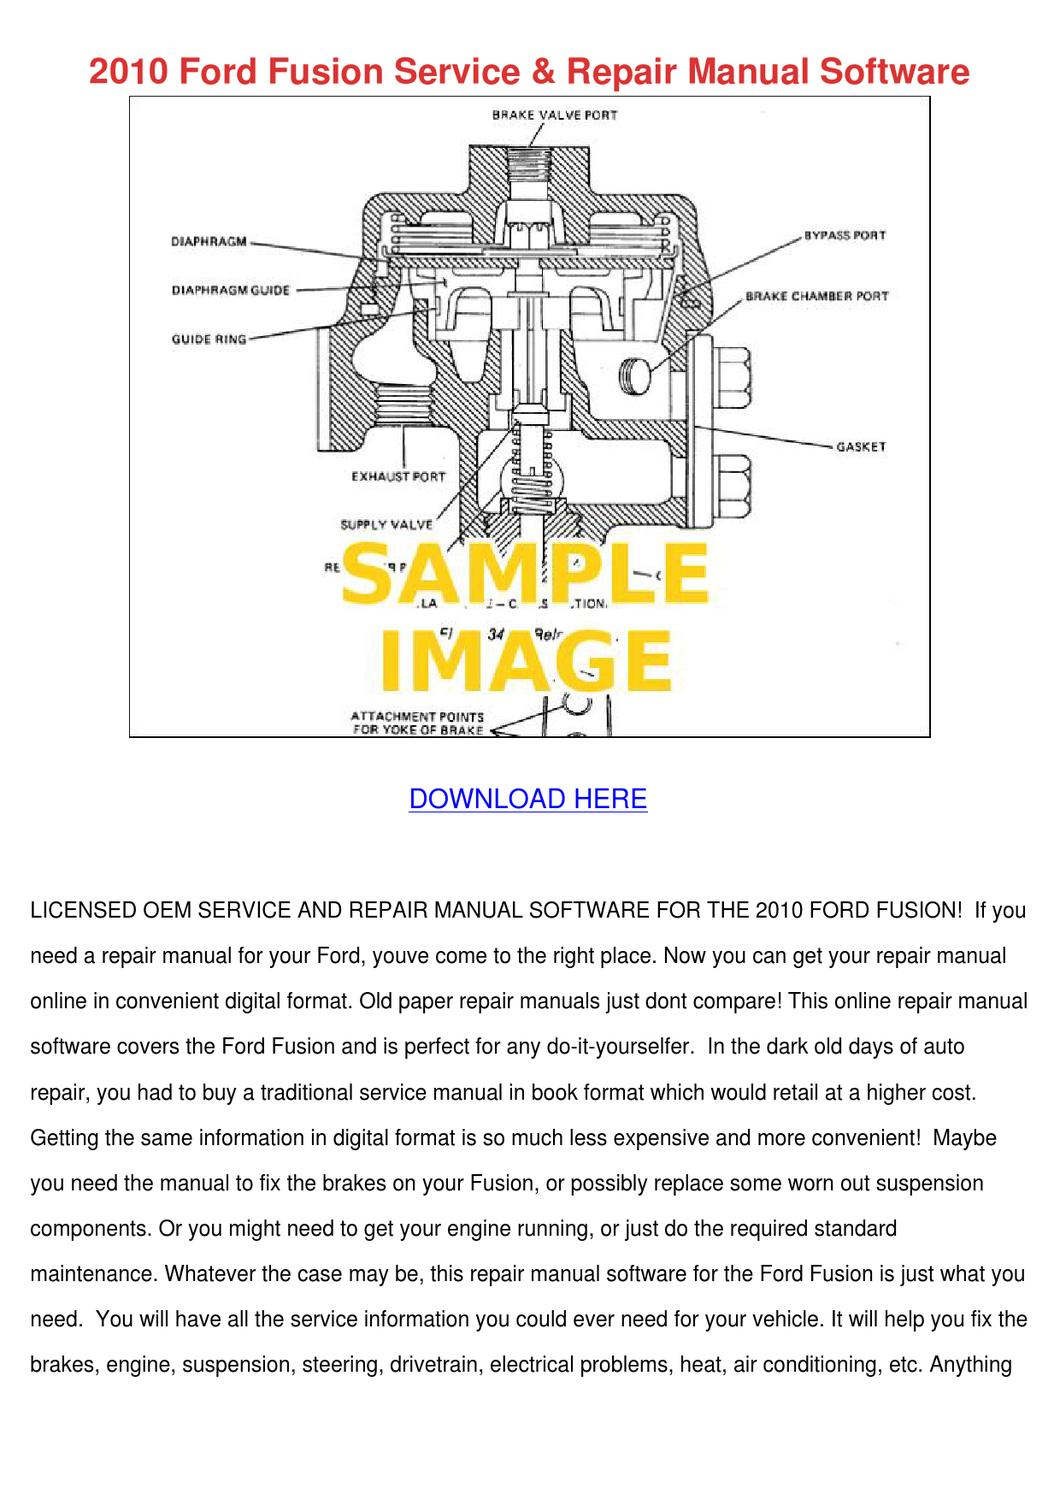 ford fusion service repair manual softwa  andyyocum